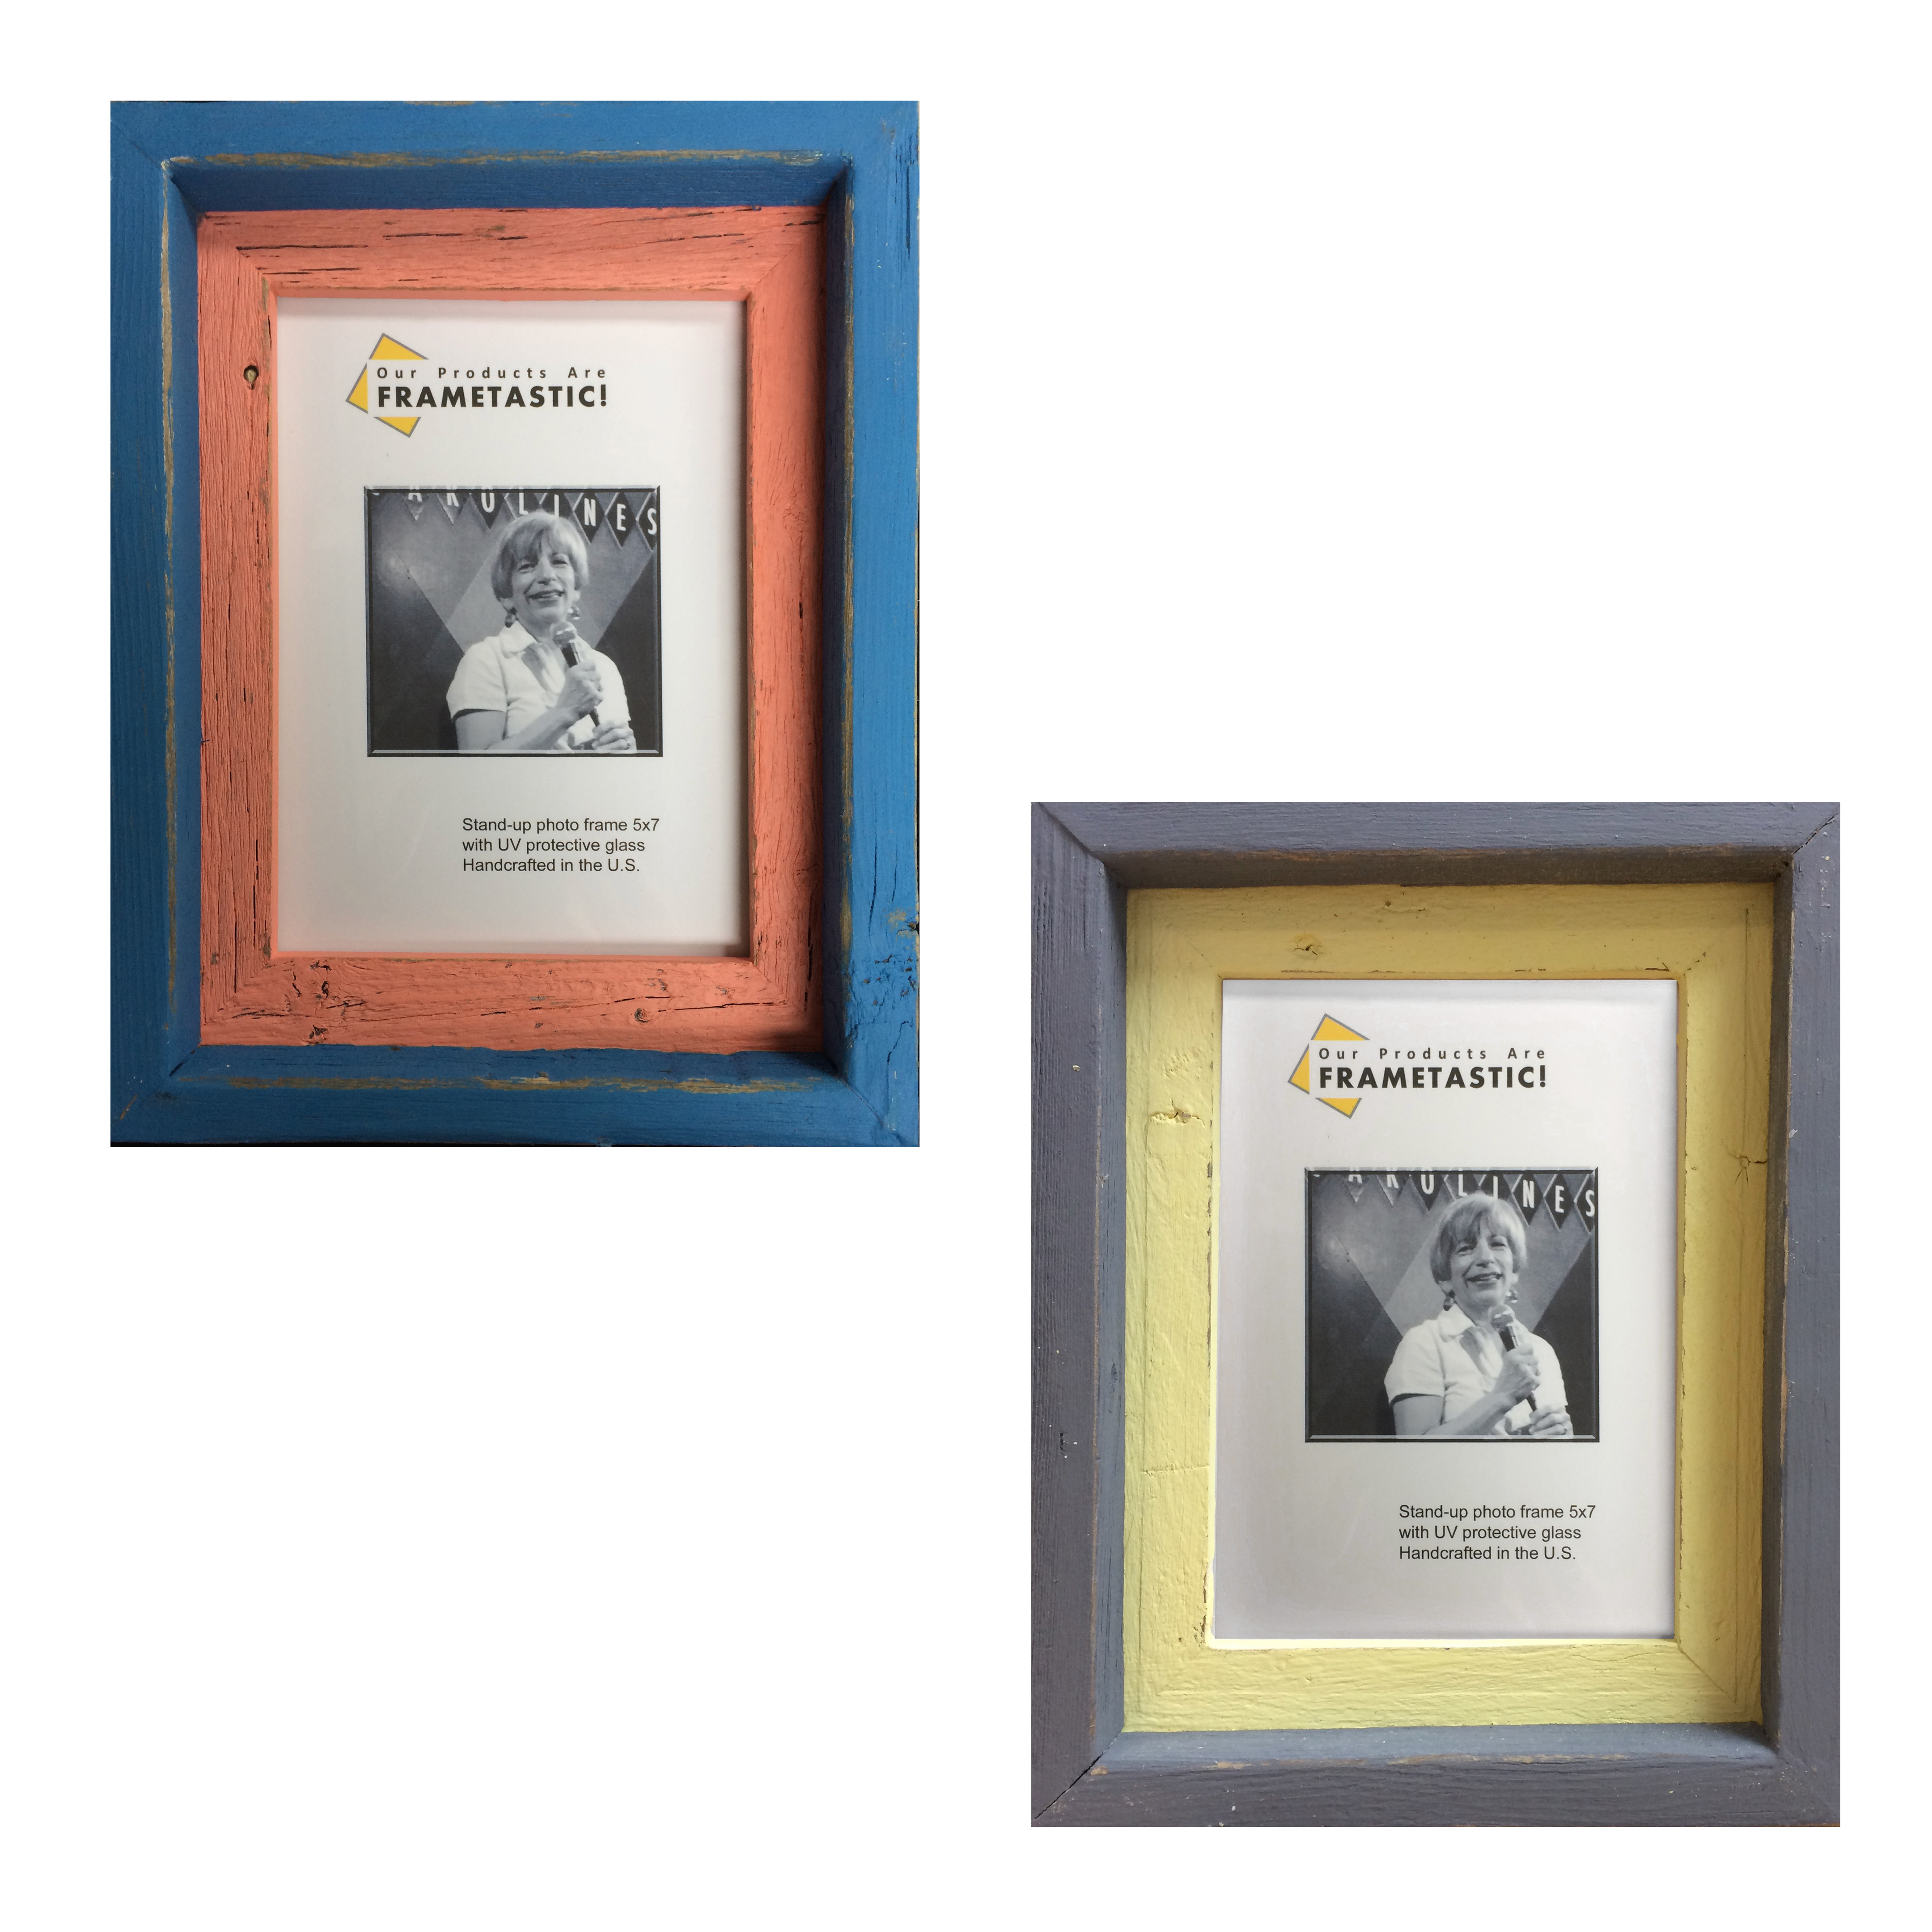 5x7 Photo frame stands vertically or horizontally